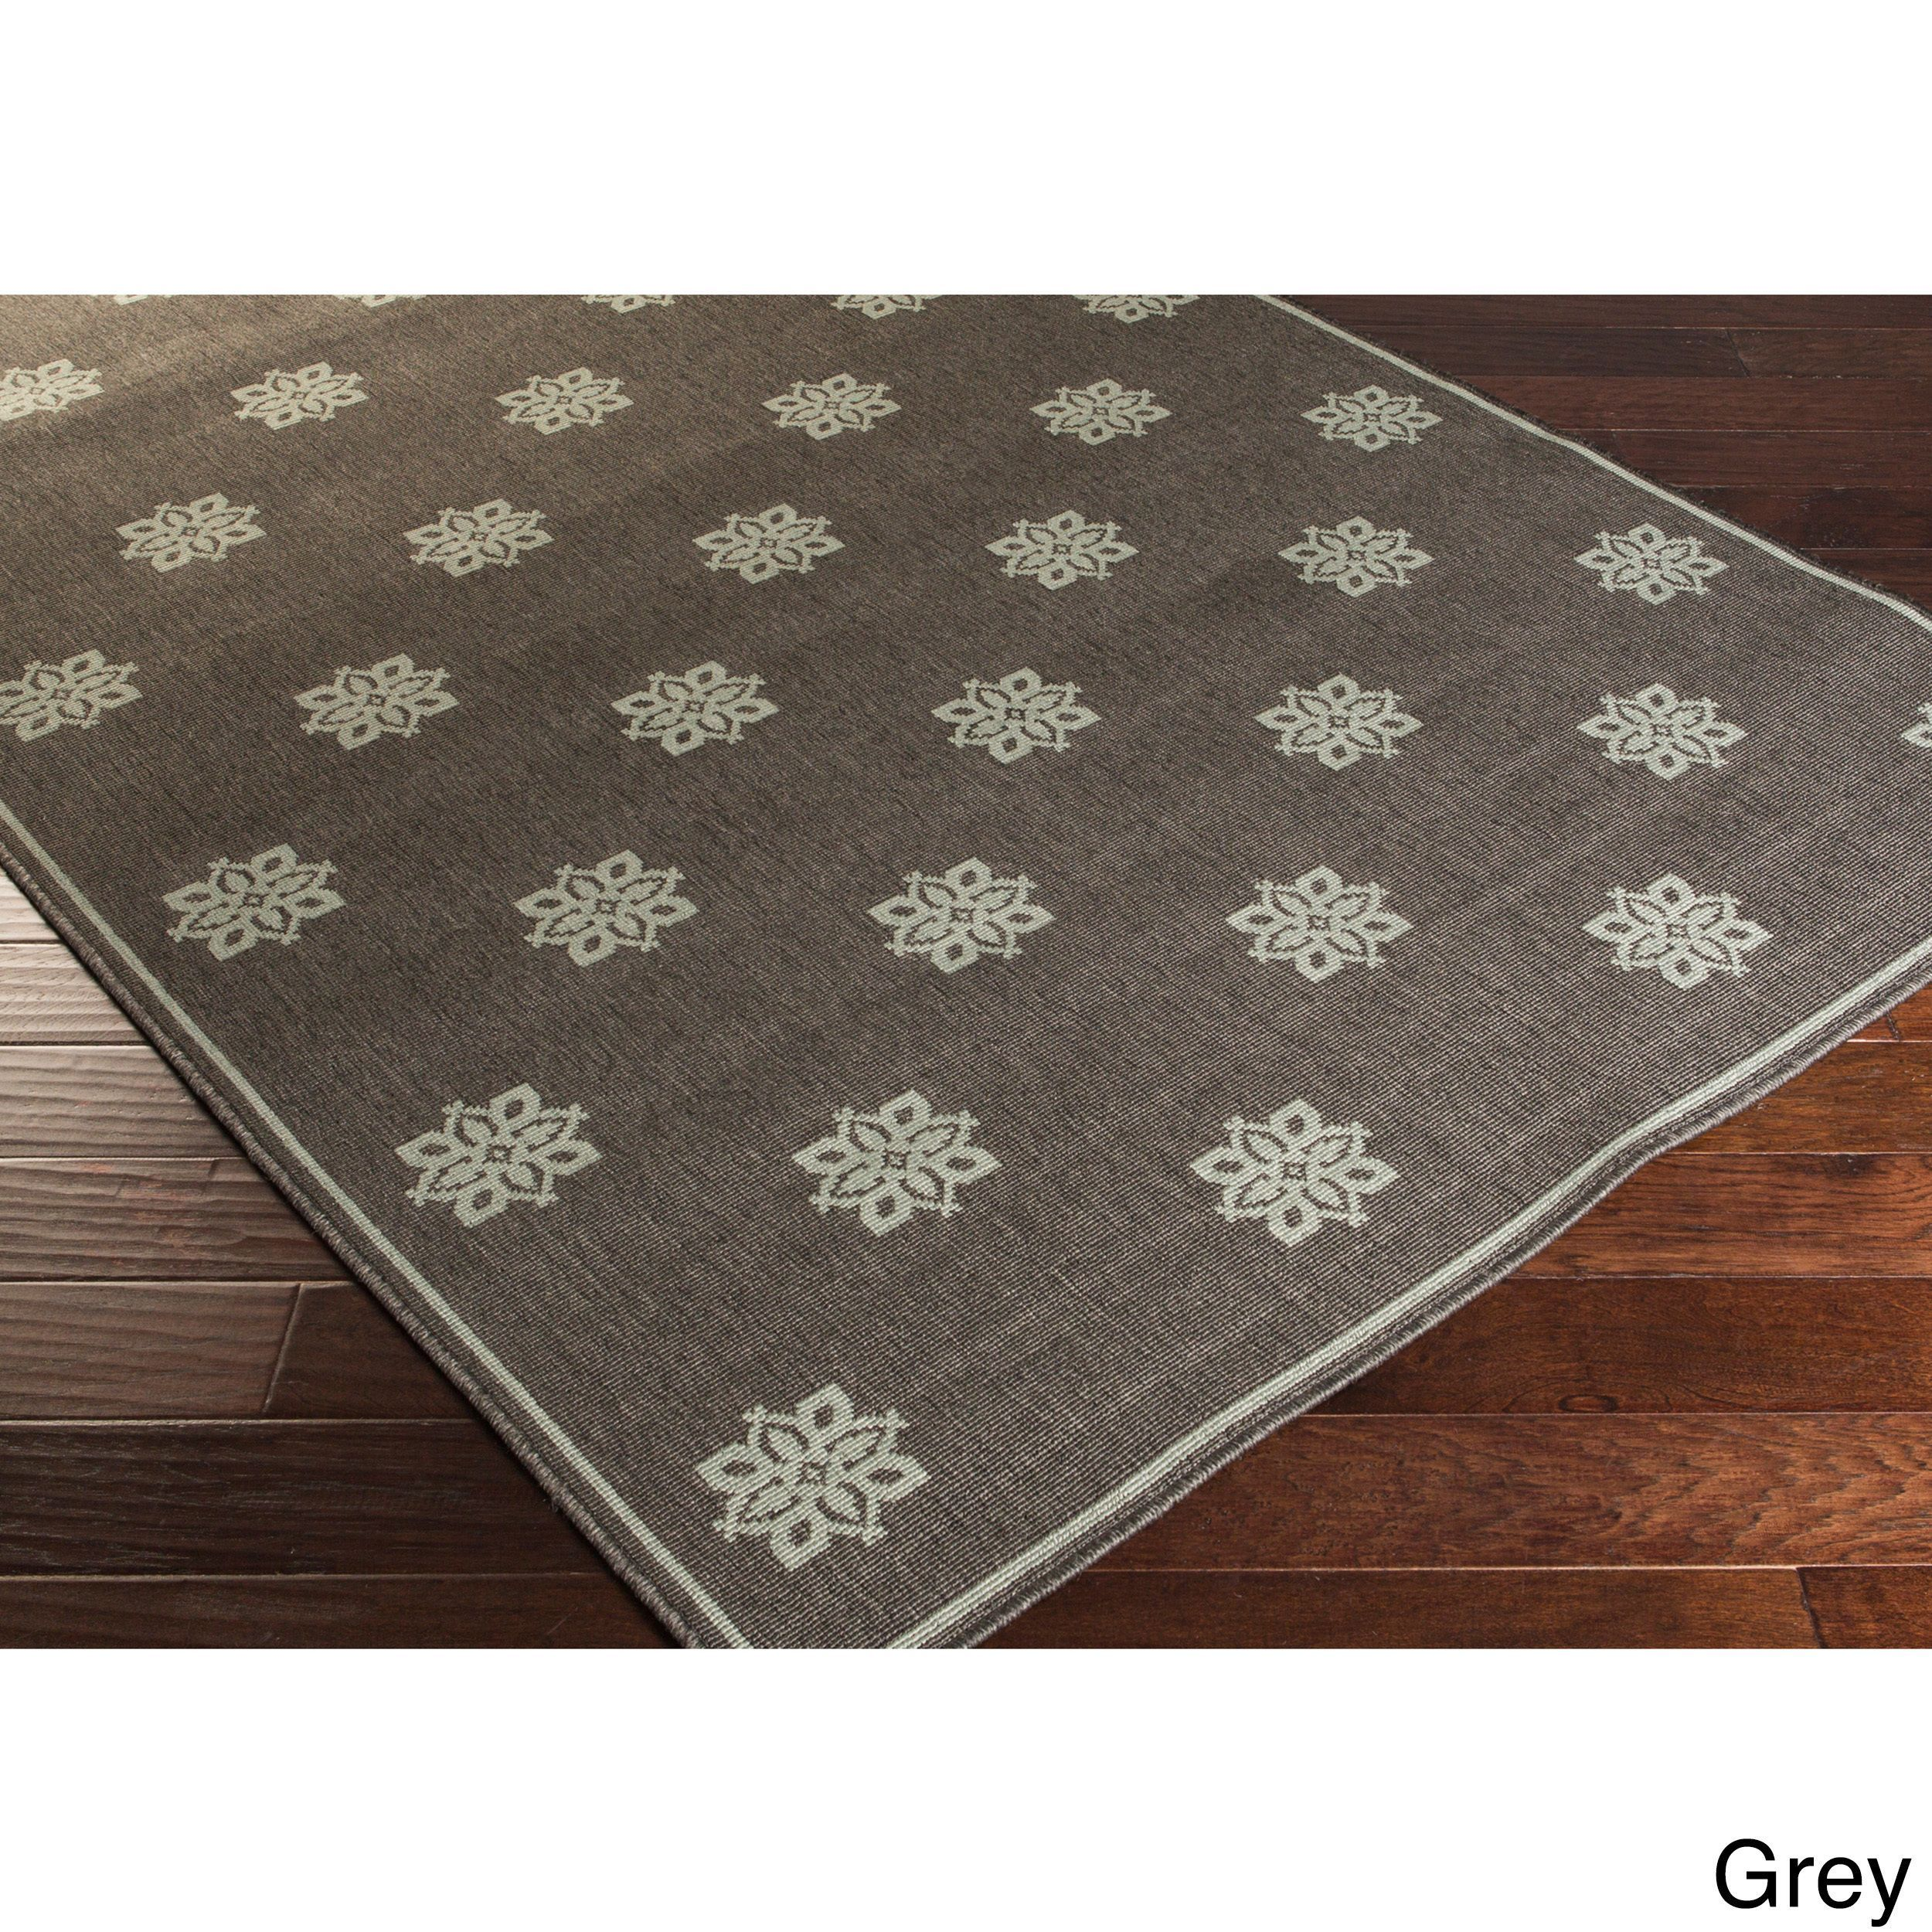 Meticulously Woven Jenna Contemporary Indoor/Outdoor Area Rug